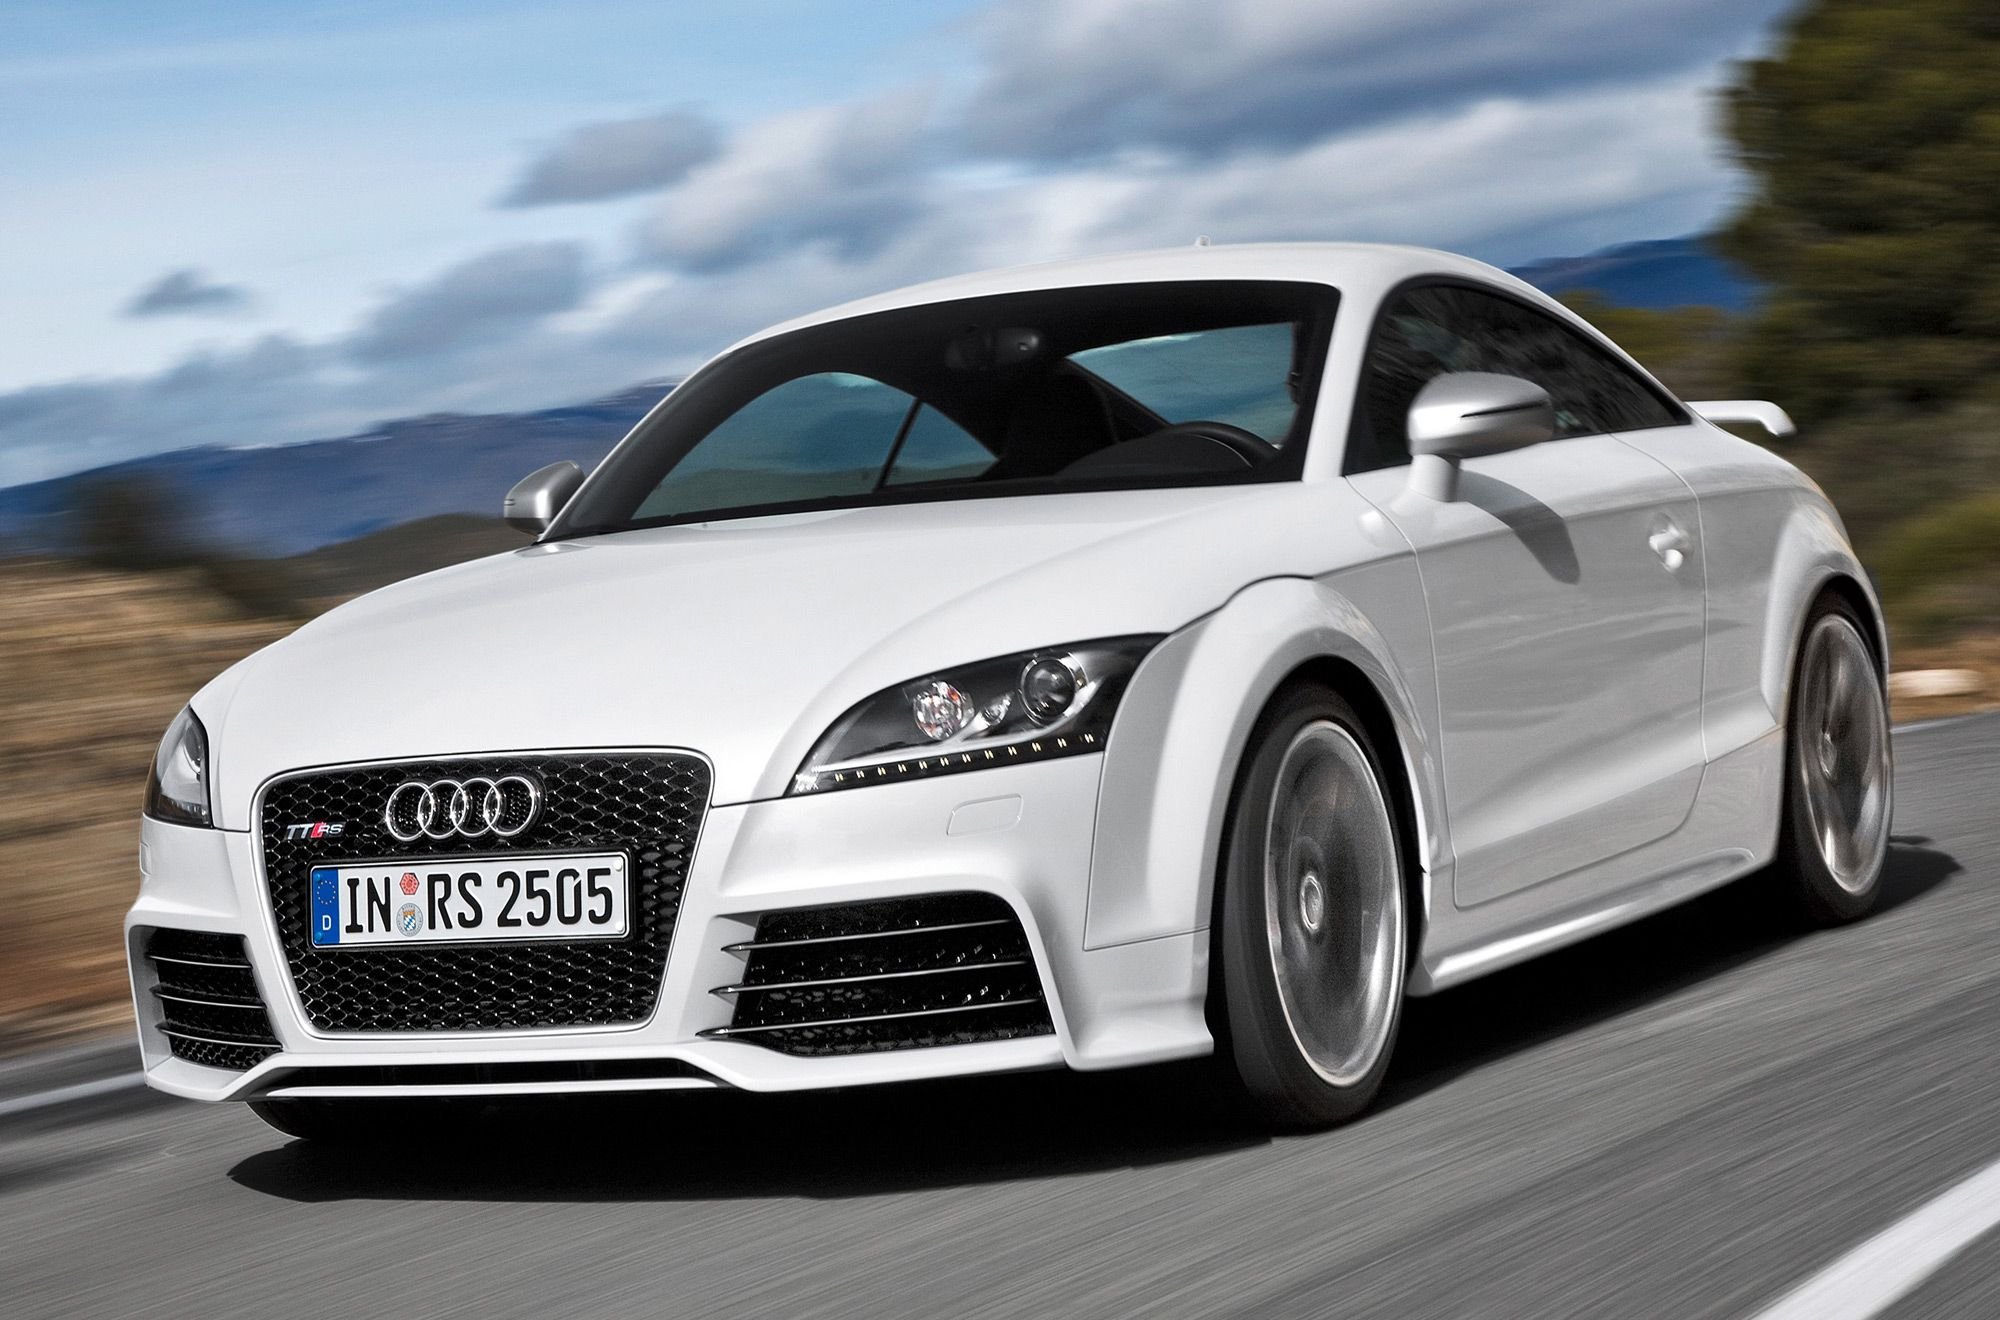 2012 audi tt rs click above for high res image gallery audi has finally released u pricing on the company s 2012 tt rs